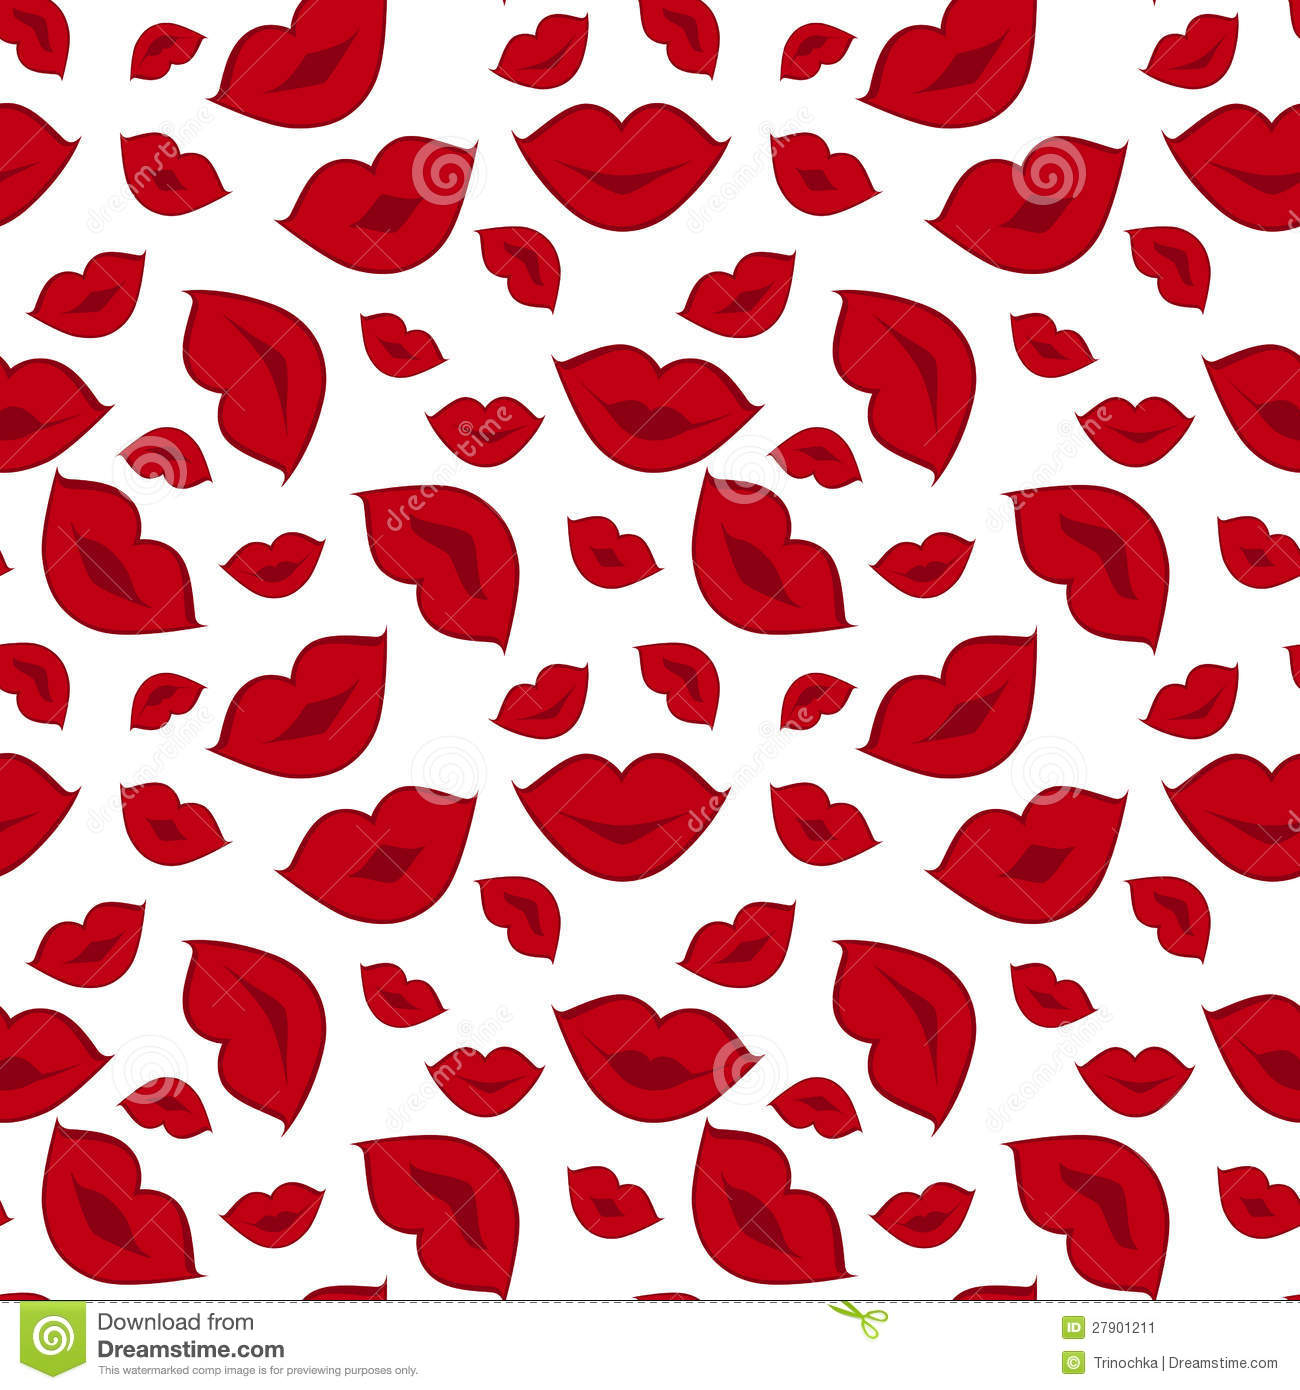 Awesome clipart lips background intended for your reference